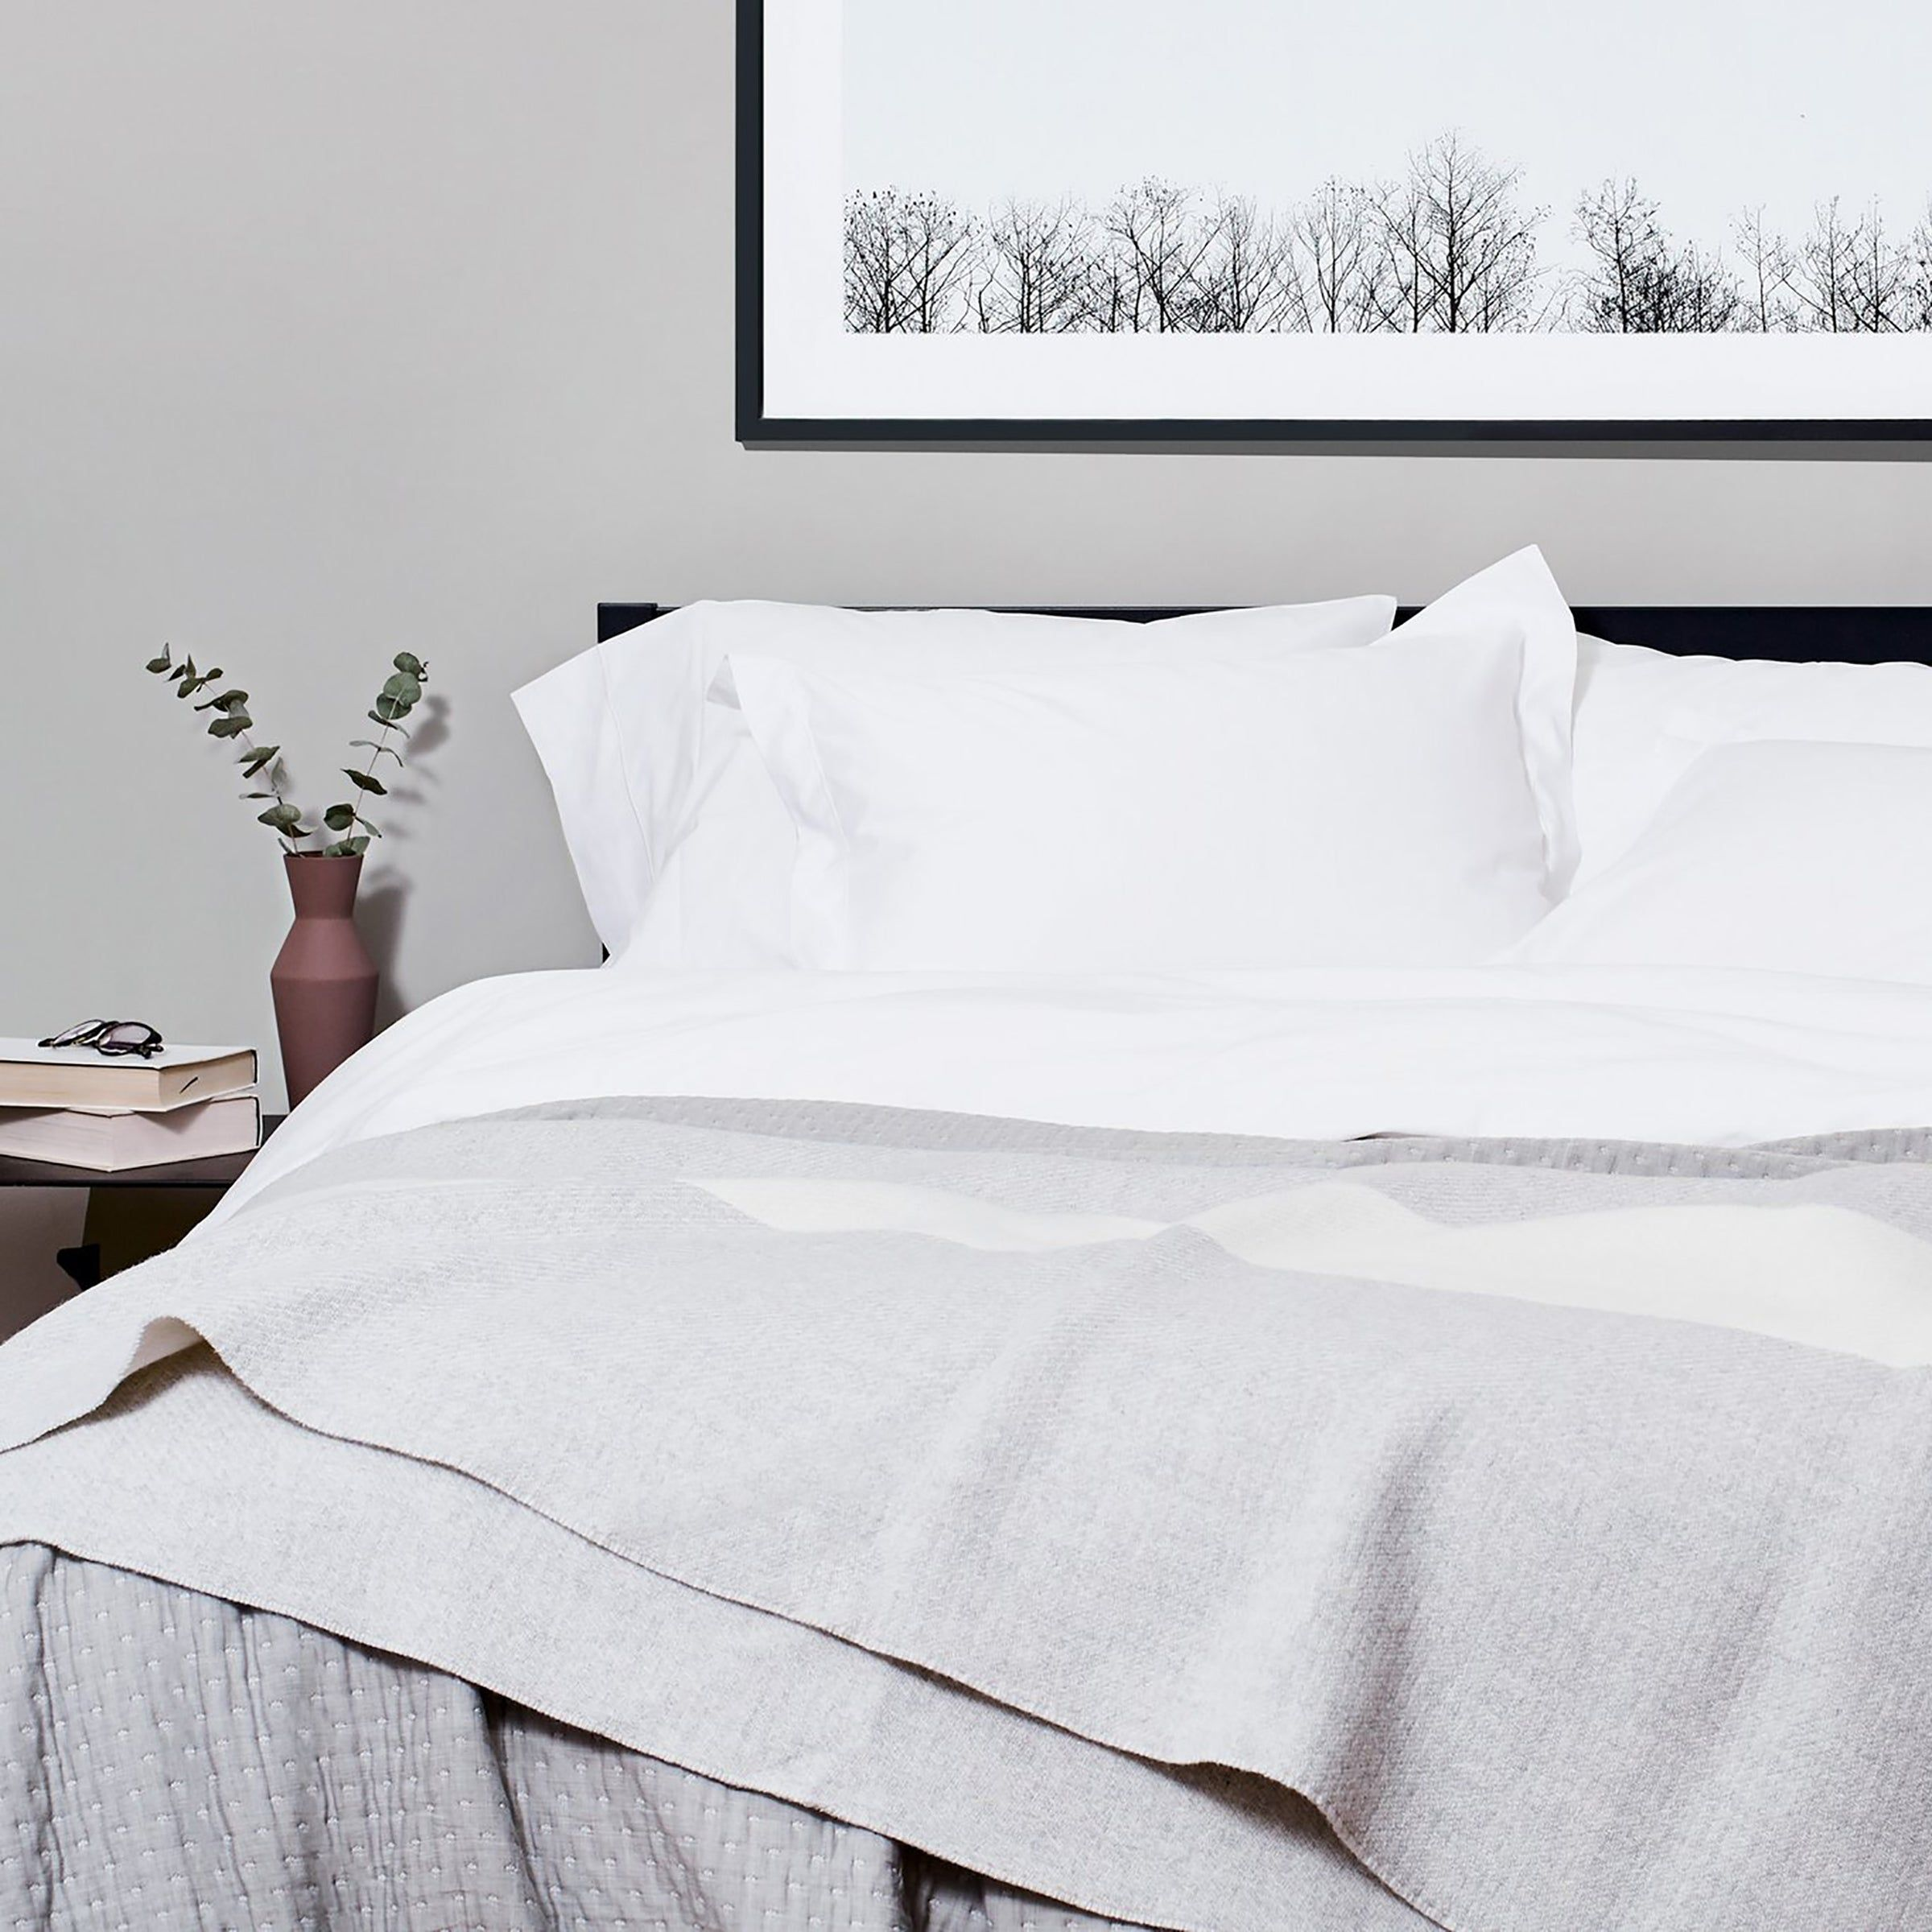 Percale Sheet Set Best cooling sheets, Bedding brands